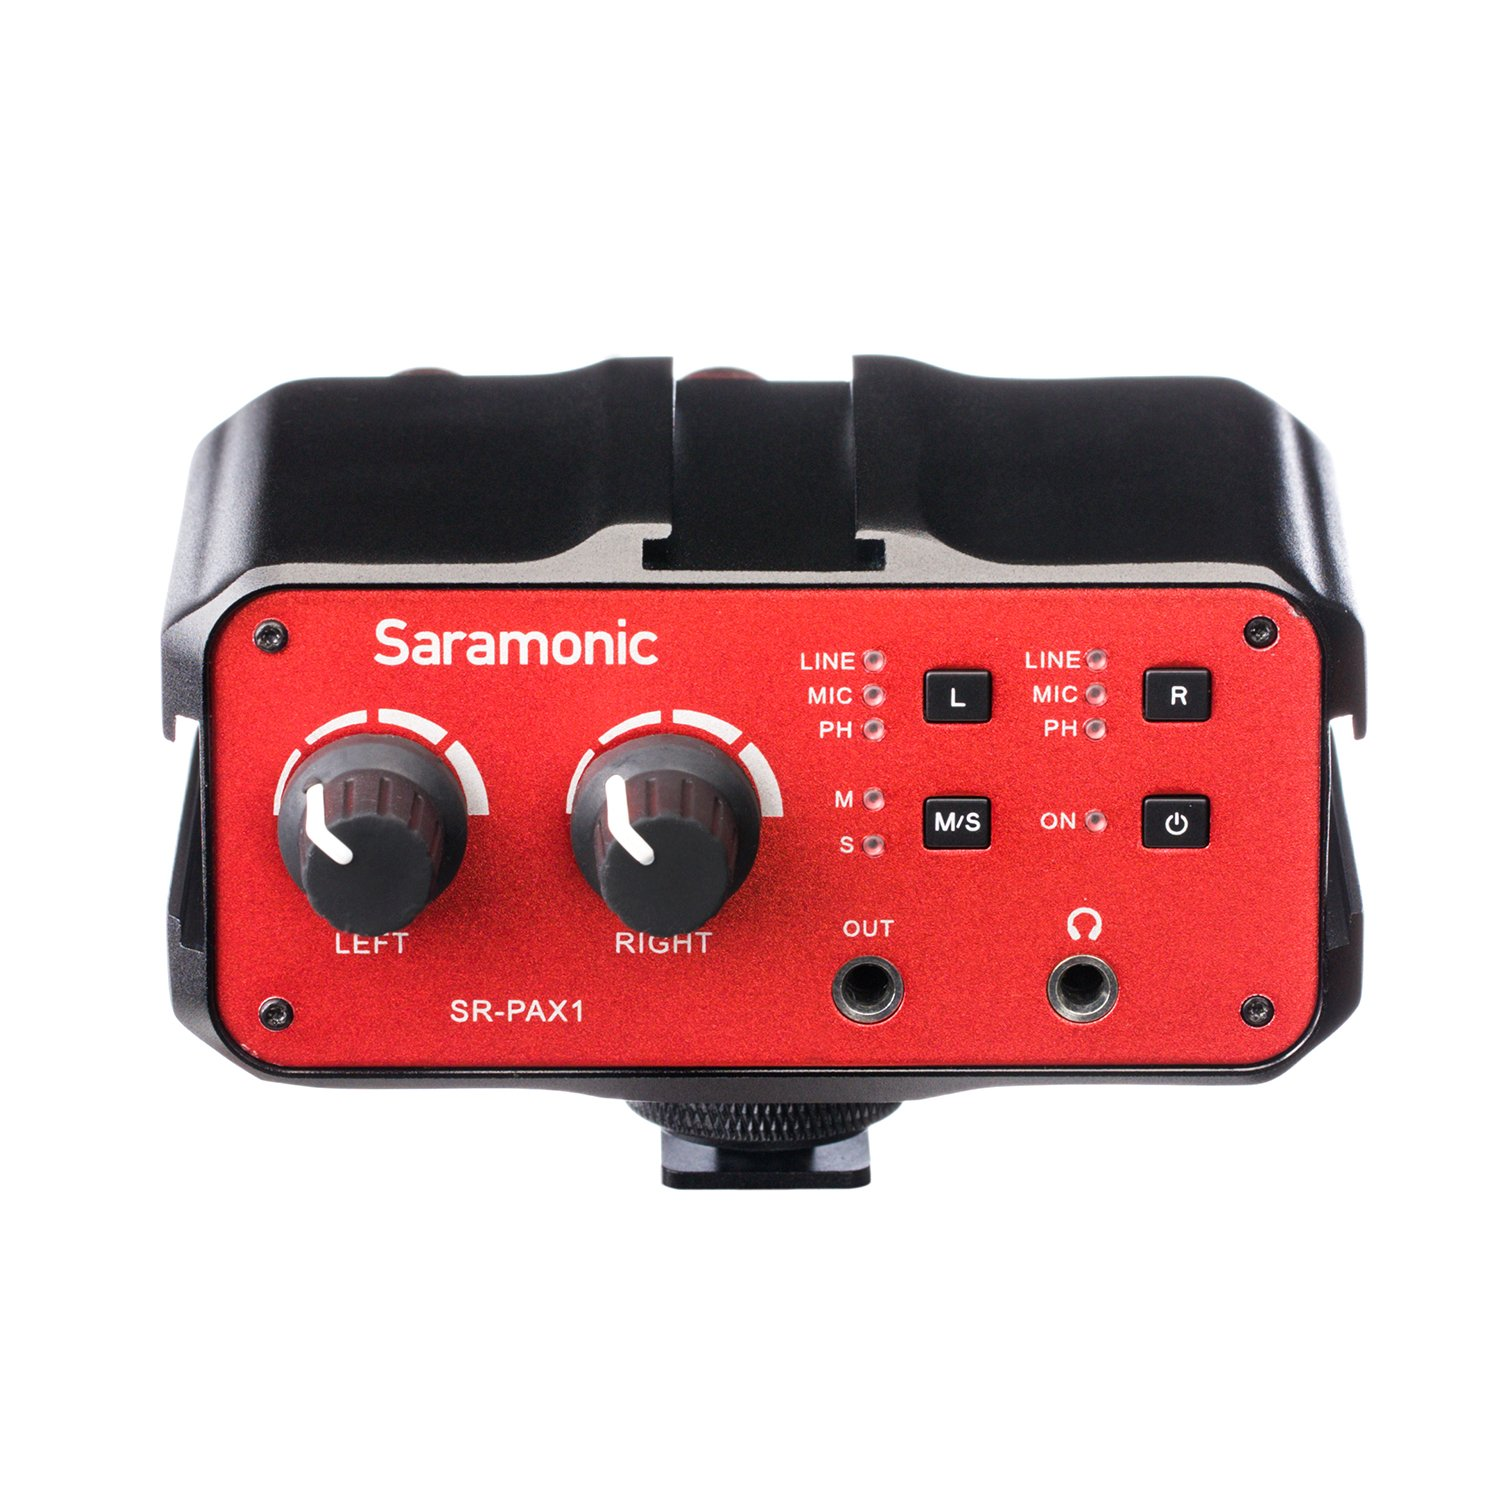 Saramonic SR-PAX1 2-Channel Audio Mixer Preamp Microphone Adapter with Dual XLR/6.3mm/3.5mm Inputs + 3.5mm Output for Guitar Canon Nikon Sony DSLR Cameras Pentax Panasonic Camcorders SR--PAX1